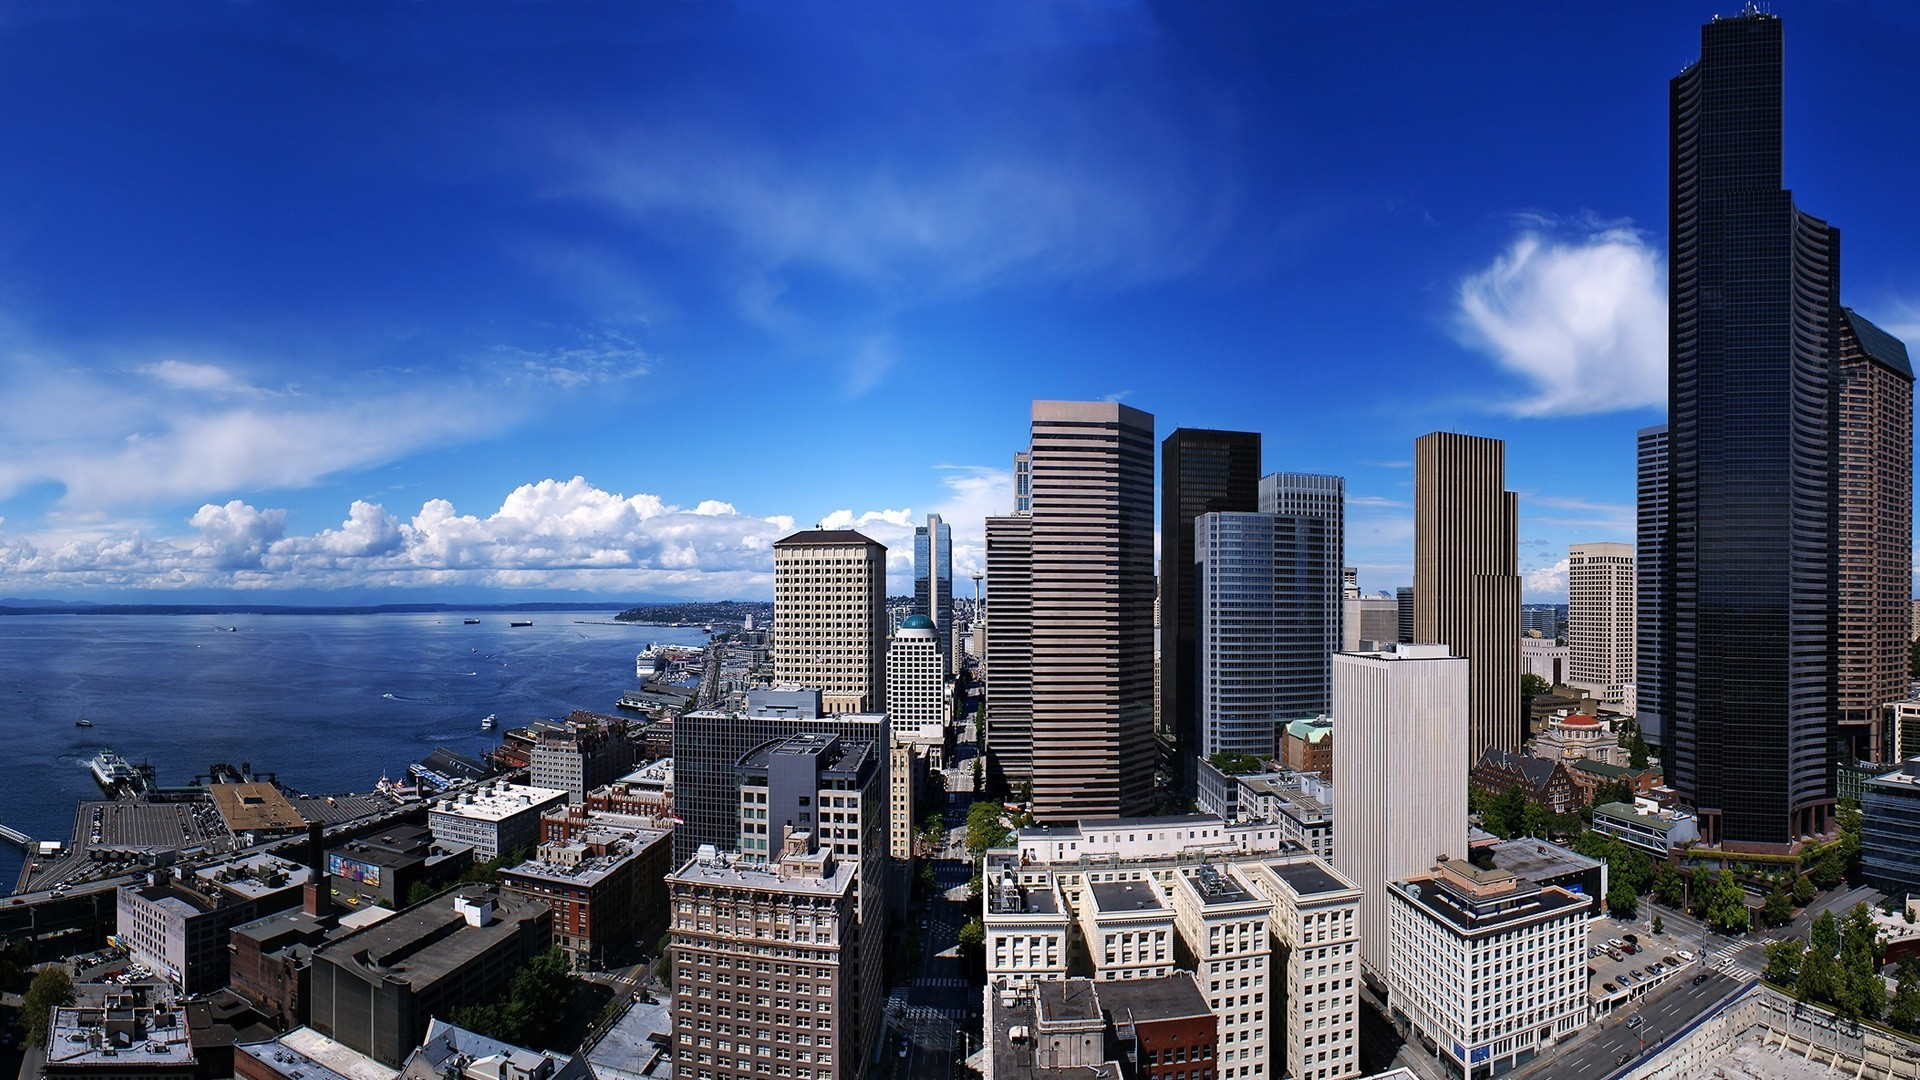 Cityscapes Clouds Port Ships Wideangle Wallpaper Allwallpaperin